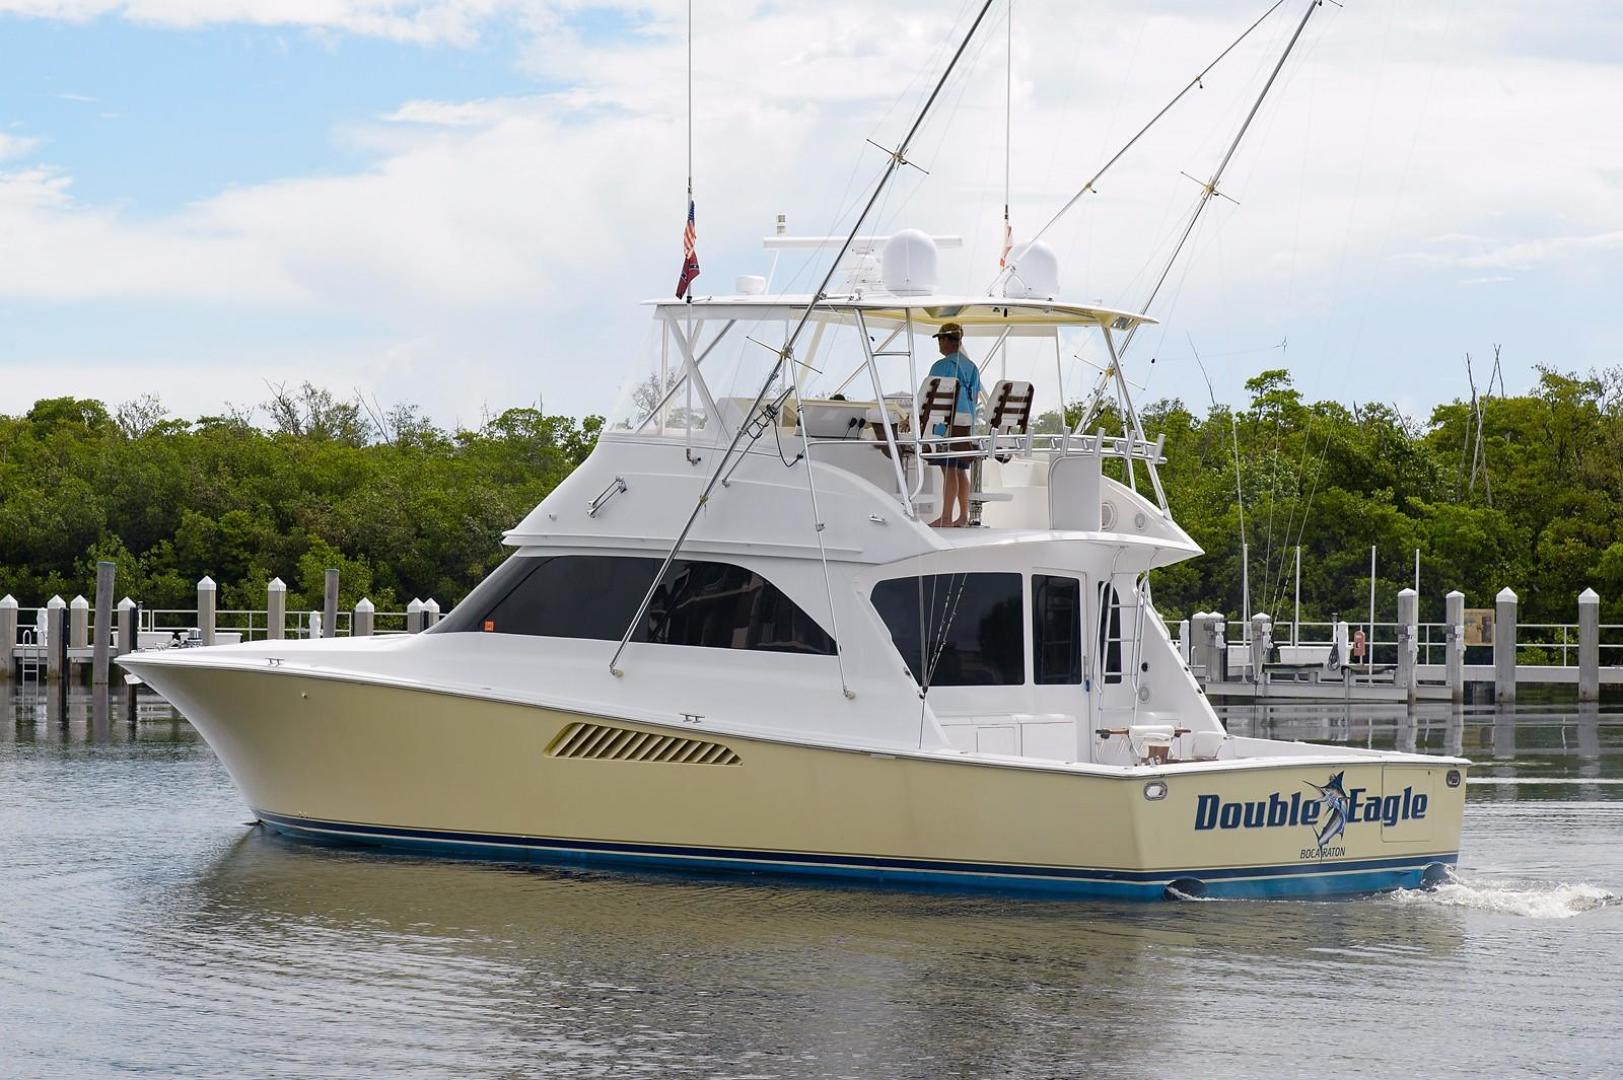 Viking-52 Convertible 2002-Double Eagle Boca Raton-Florida-United States-458767 | Thumbnail